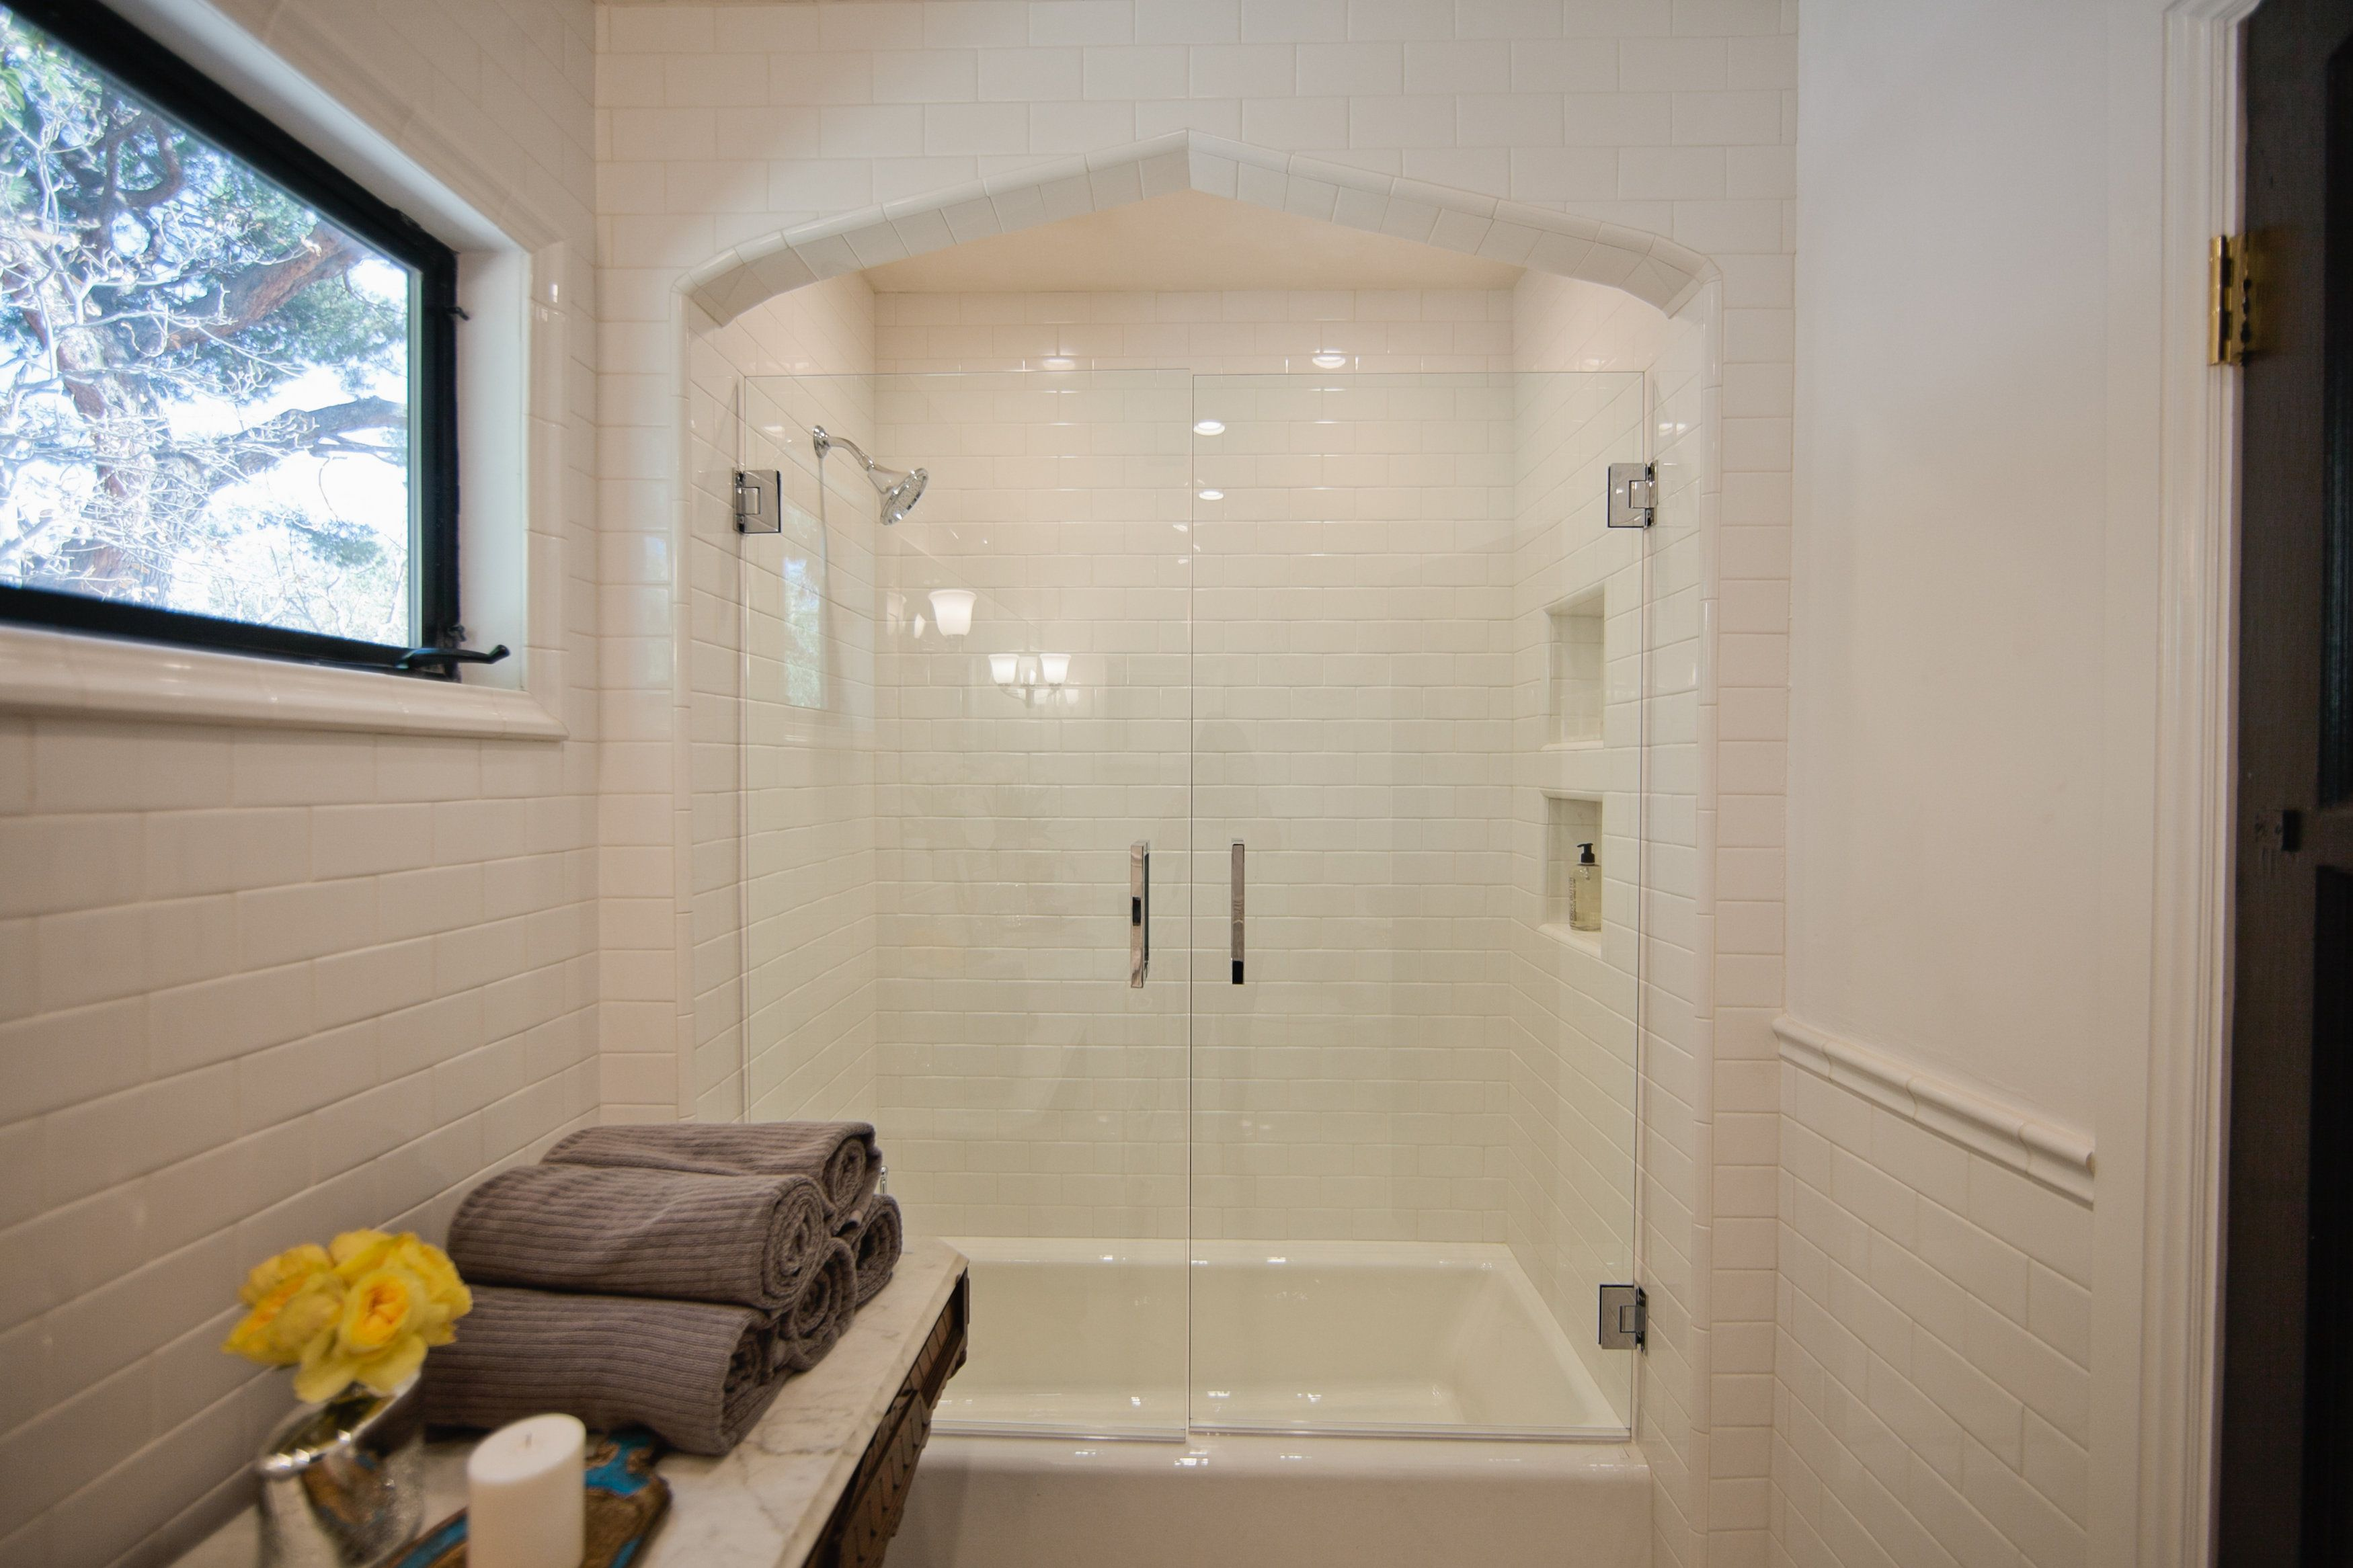 #Teamred #Bathroom #Dreambuilders Great Idea For Making A Tub Or